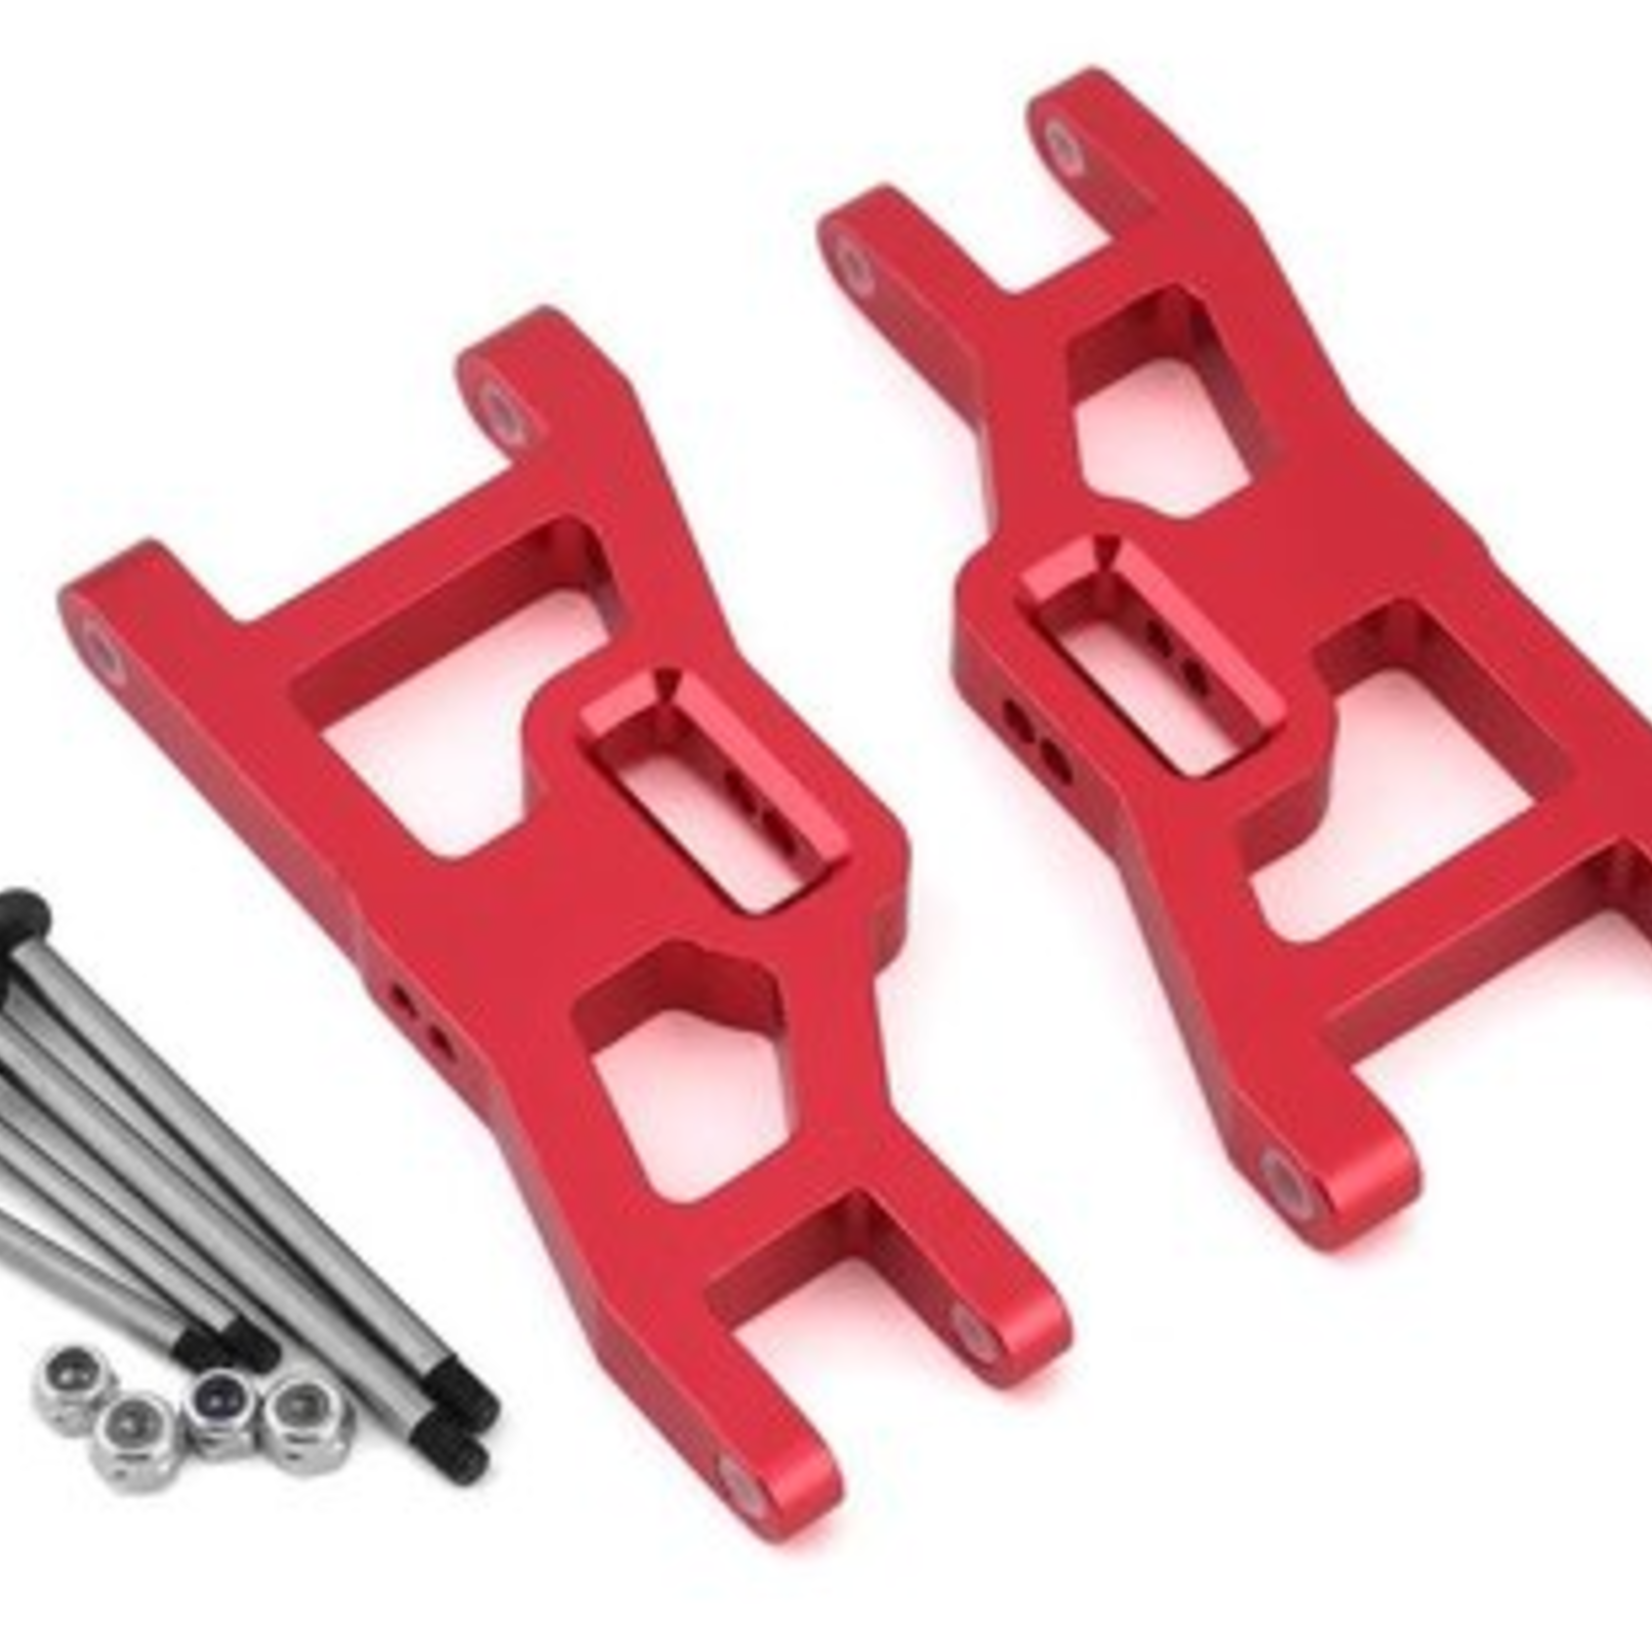 ST Racing Concepts SPTST3631XR ST Racing Concepts Red Heavy Duty Front Suspension Arms Kit w/ Lock-Nut Hinge-Pins, for Traxxas Rustler/Stampede (Red)